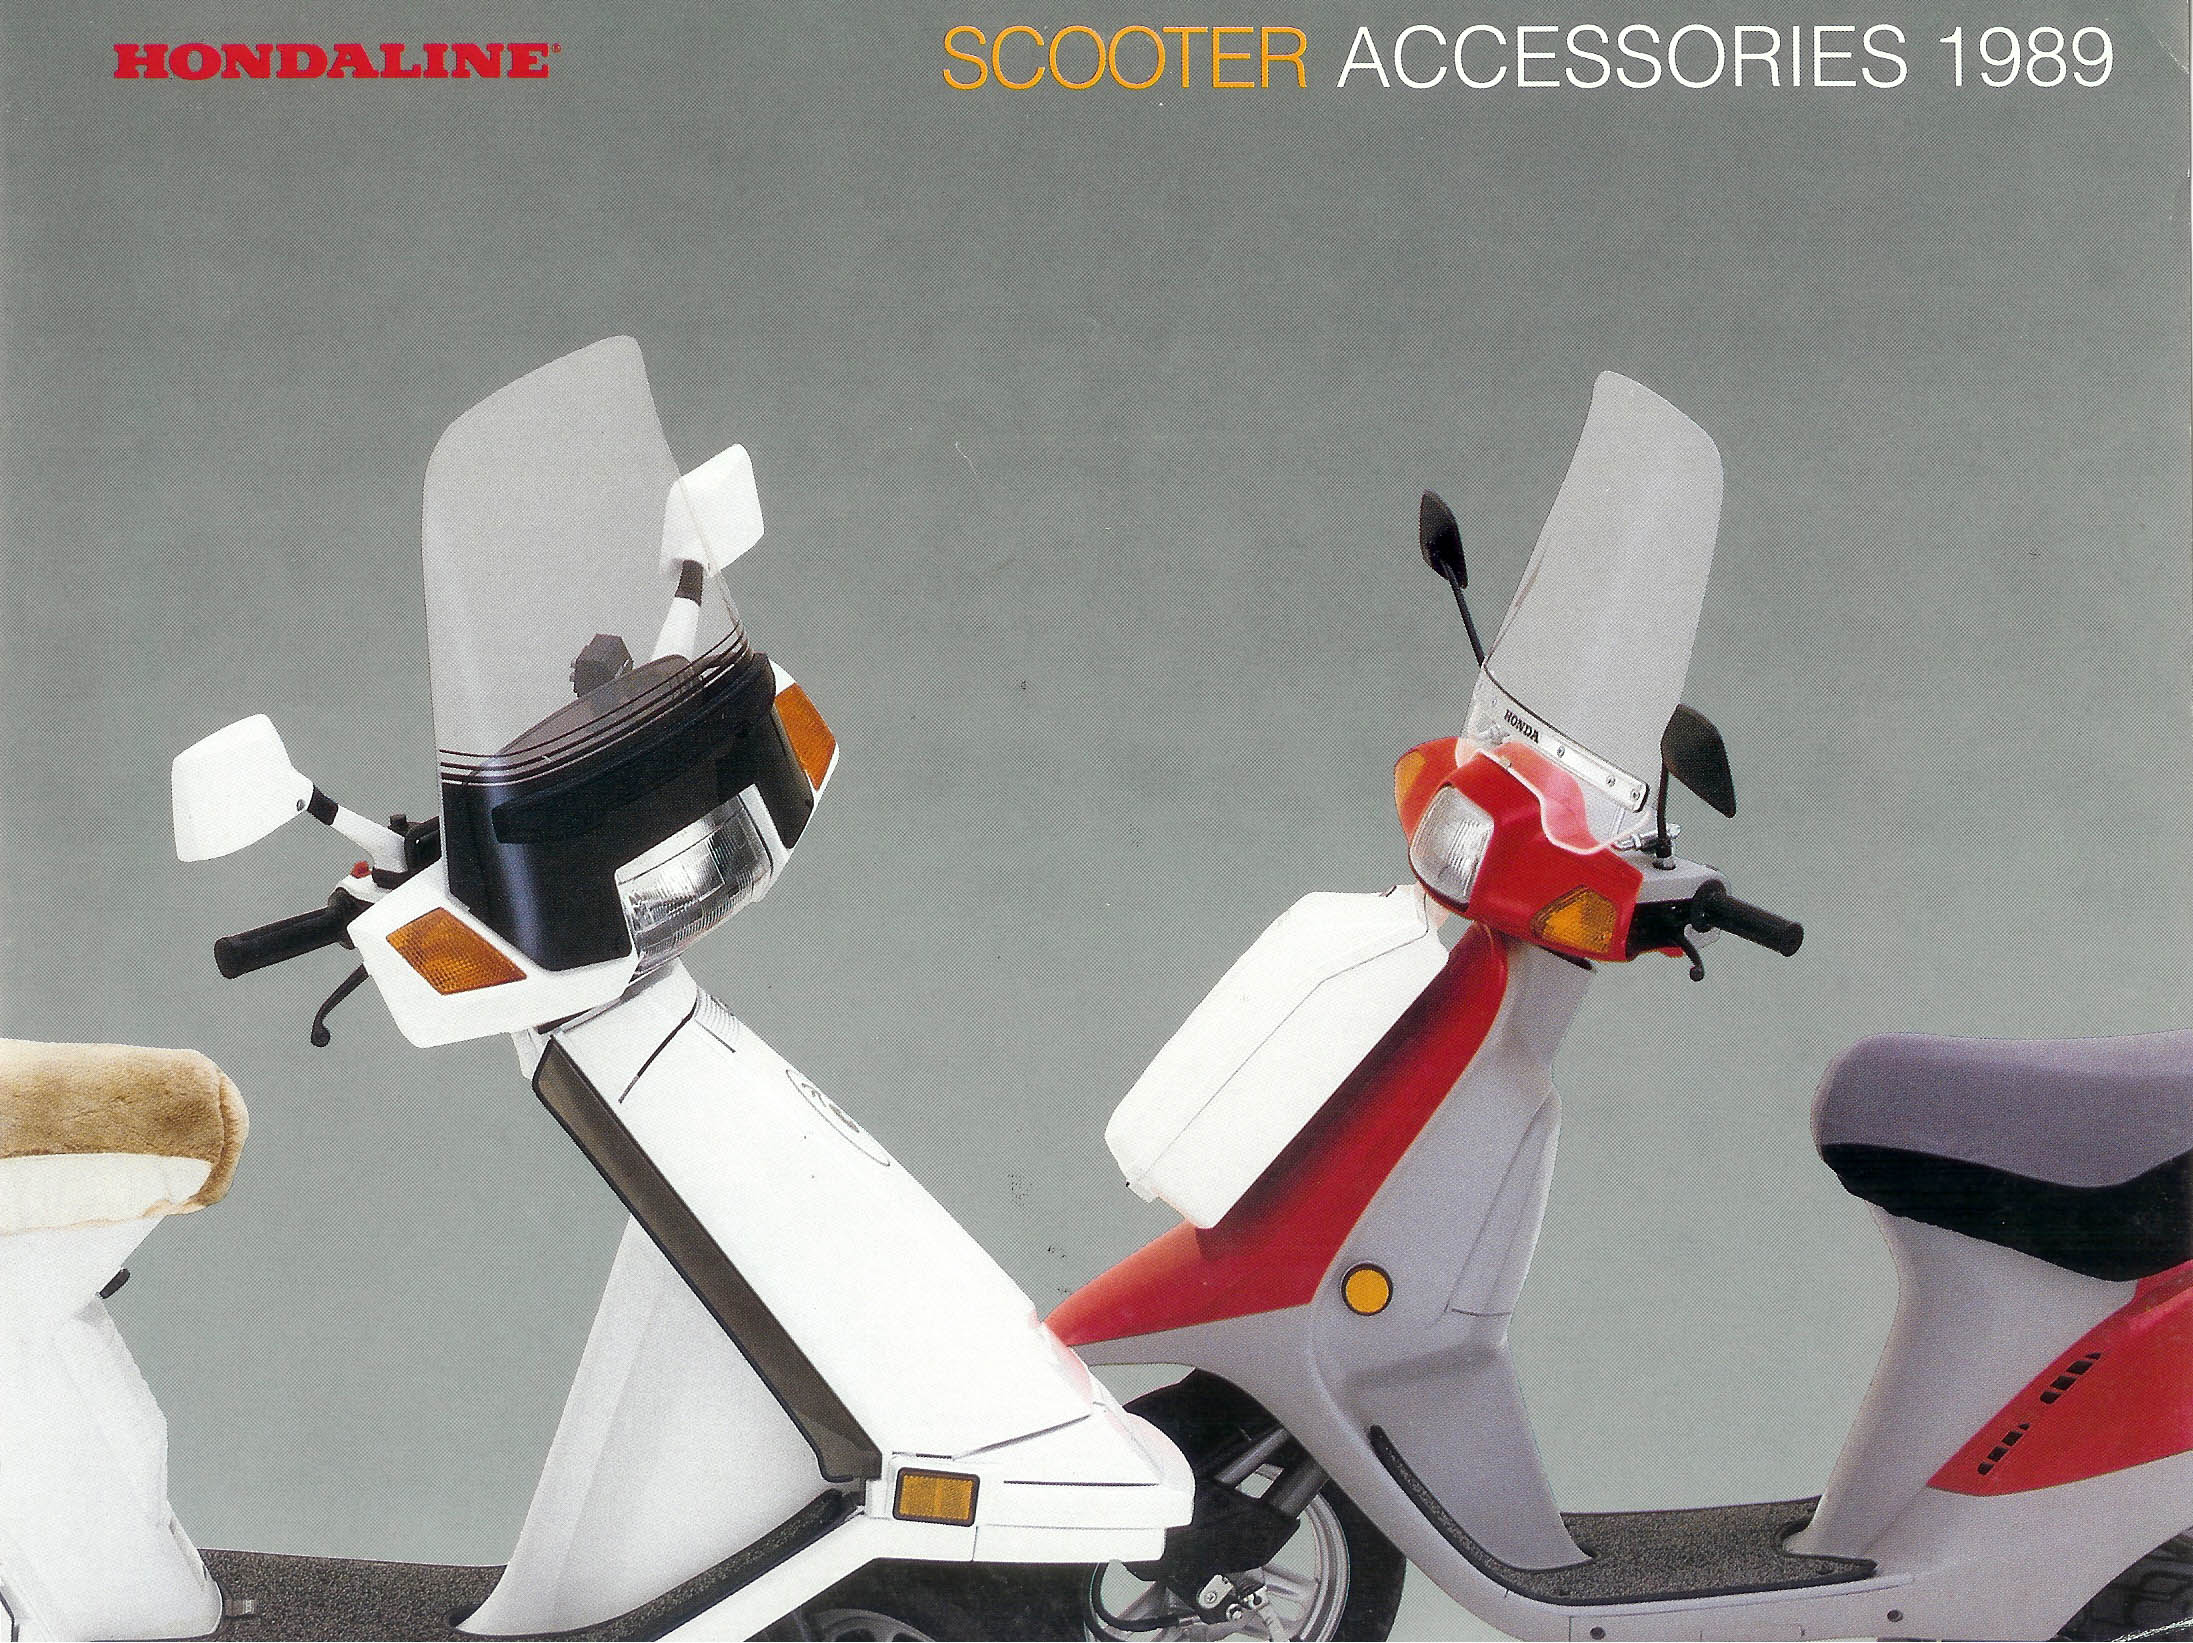 General Honda Scooter Information 89 Elite Wiring 1989 Accessories Page 1 Full Size